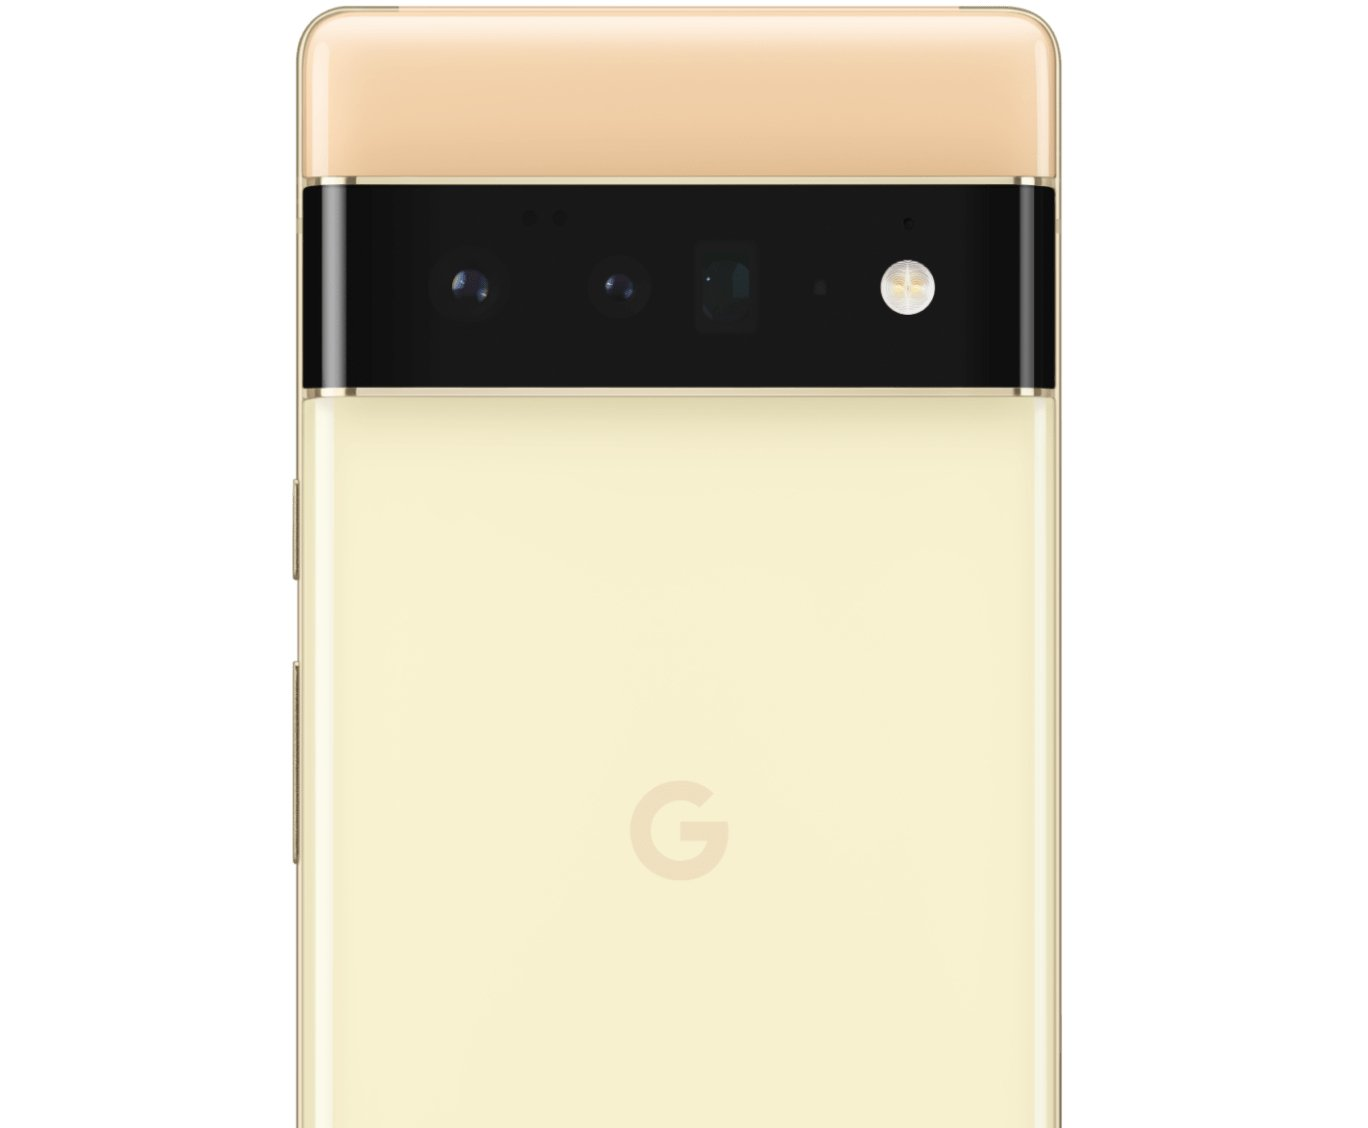 Pixel 6 Pro Could Support 33W Fast Charging | Rumored October 19 Unveiling